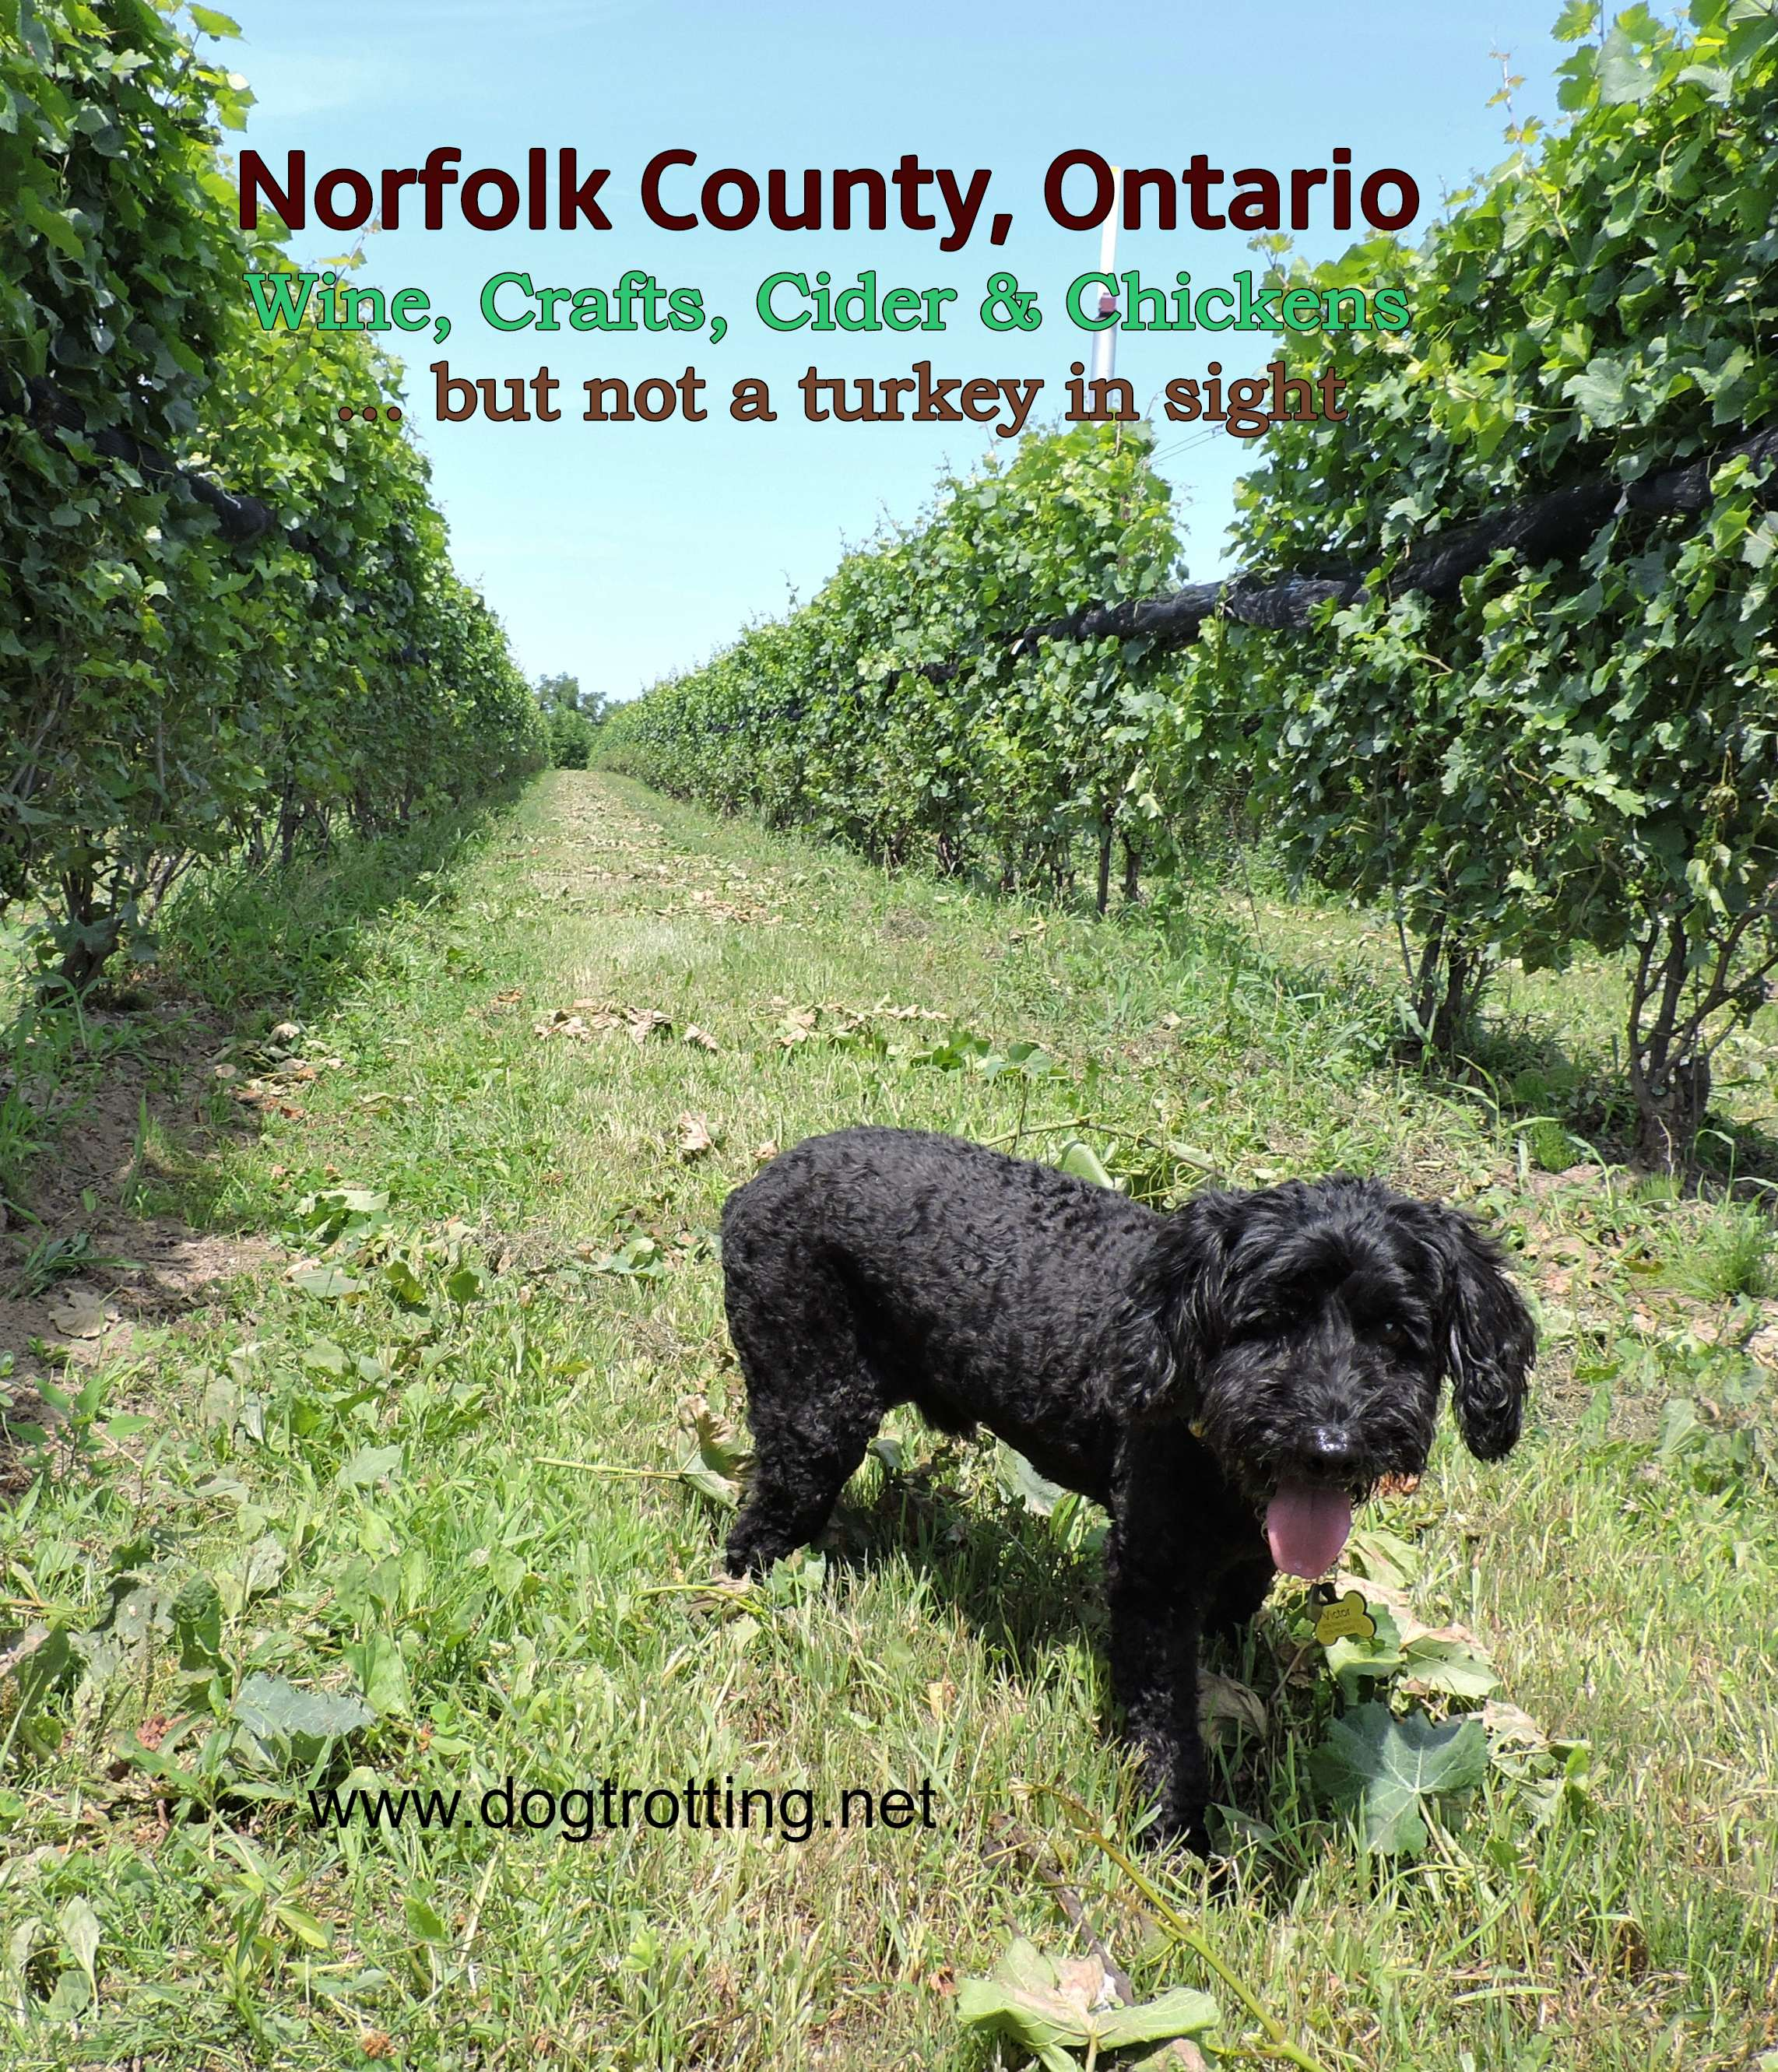 Toast the Coast: Norfolk County Long Weekend Dog-friendly Road Trip